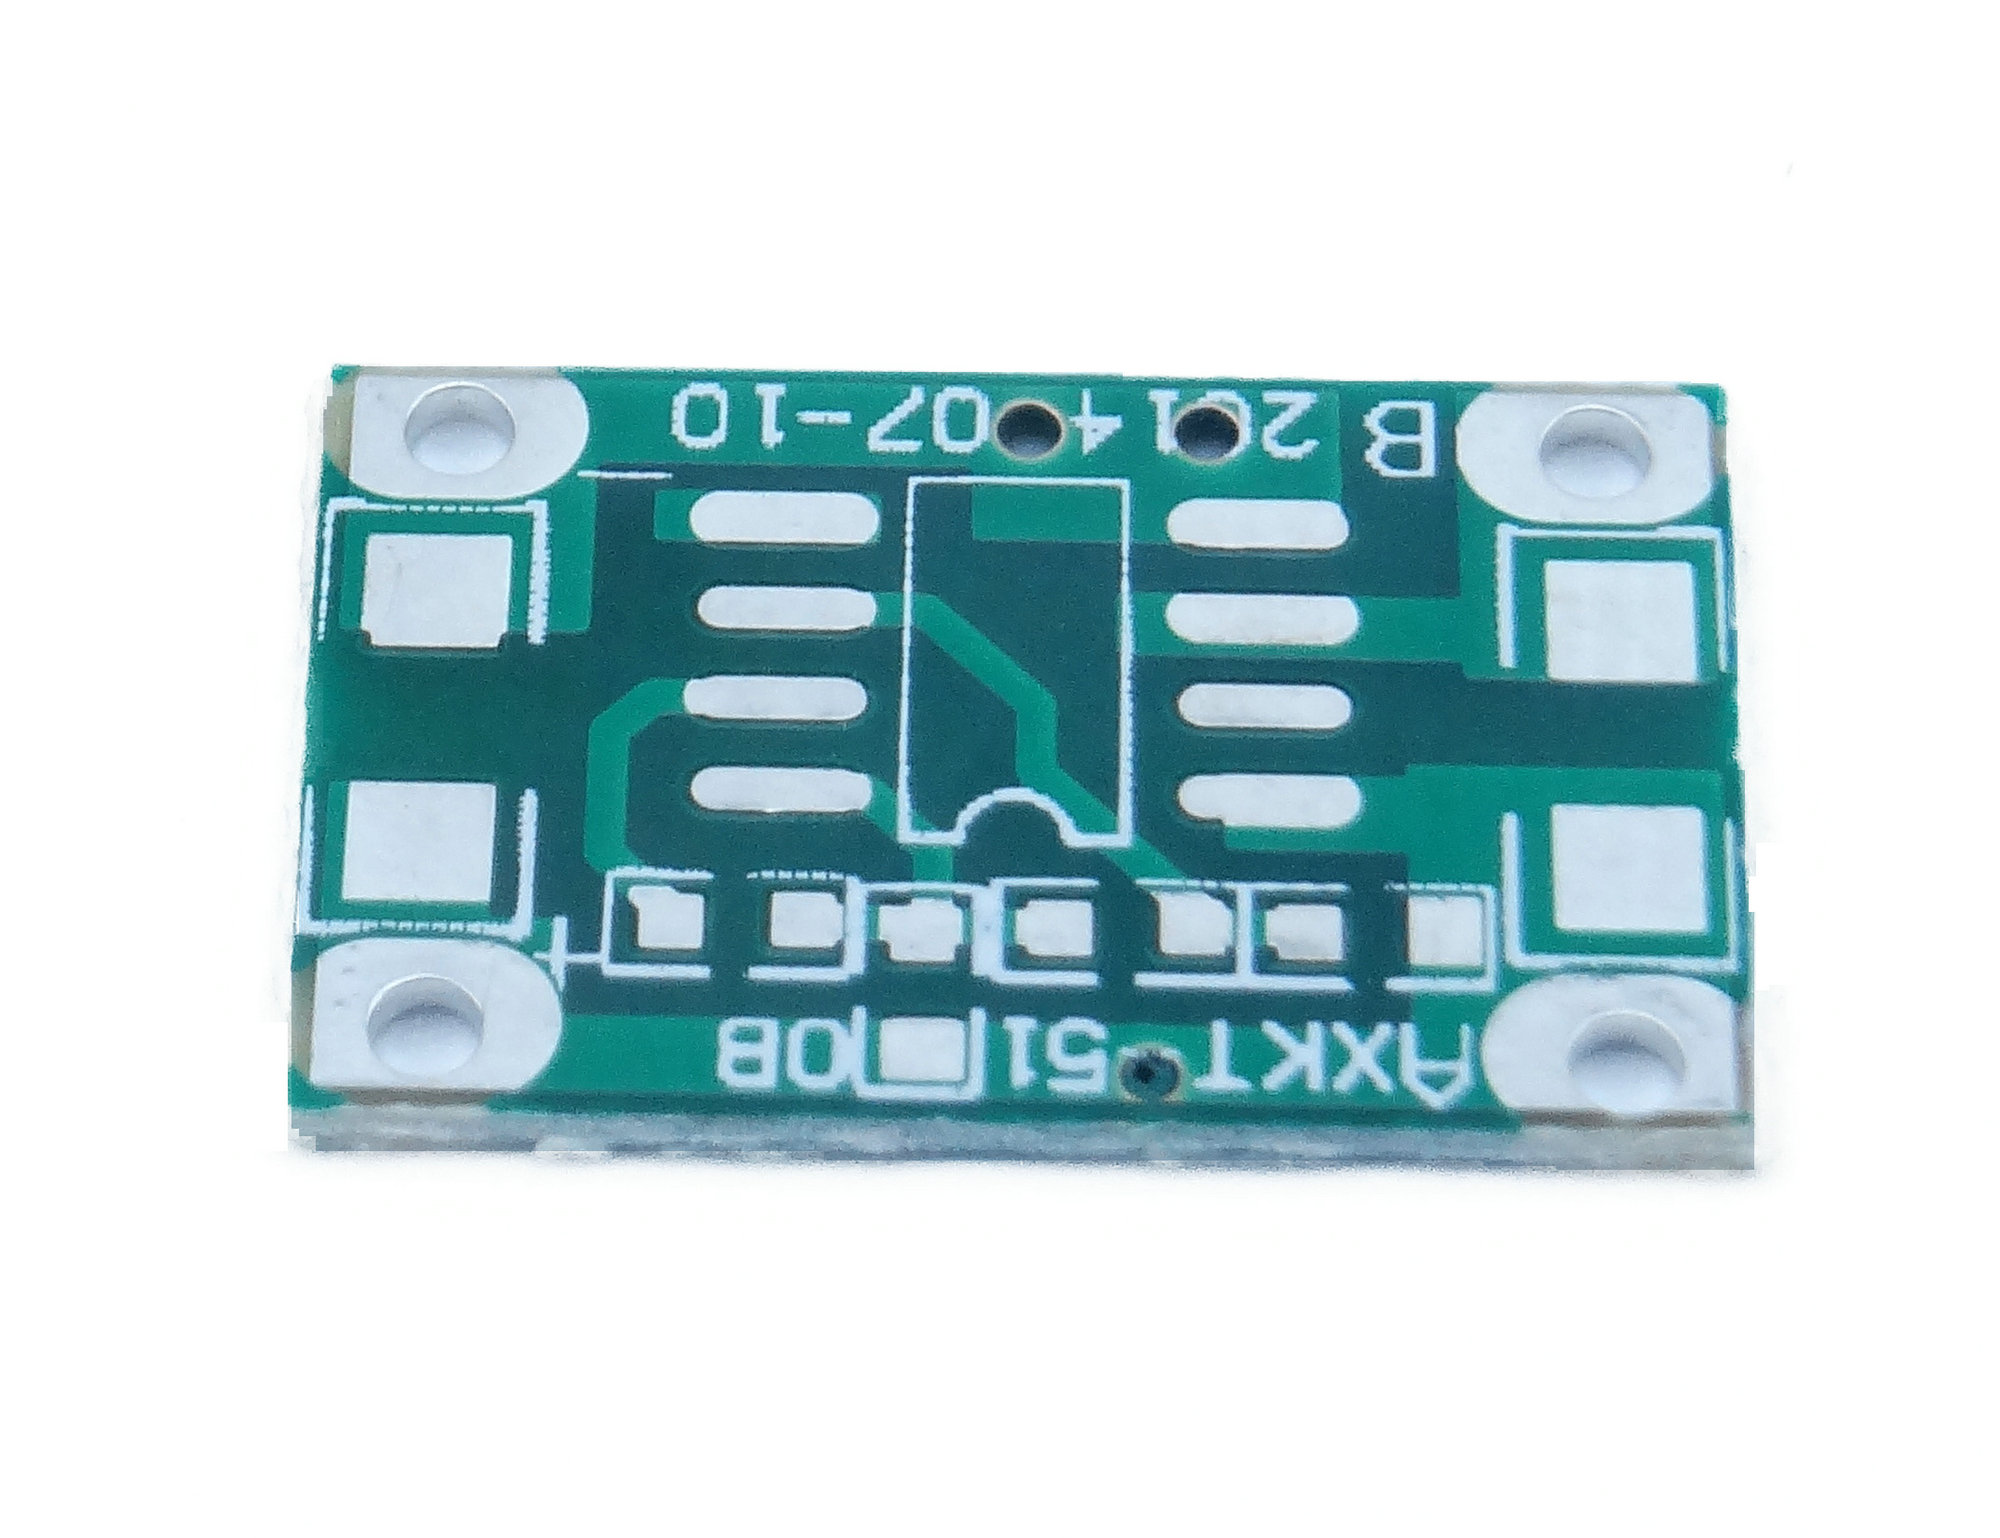 510 Single Chip Series Wireless Charging Power Supply Module Circuit Diagram Of Remote Control Tester Pcb Board Test In Instrument Parts Accessories From Tools On